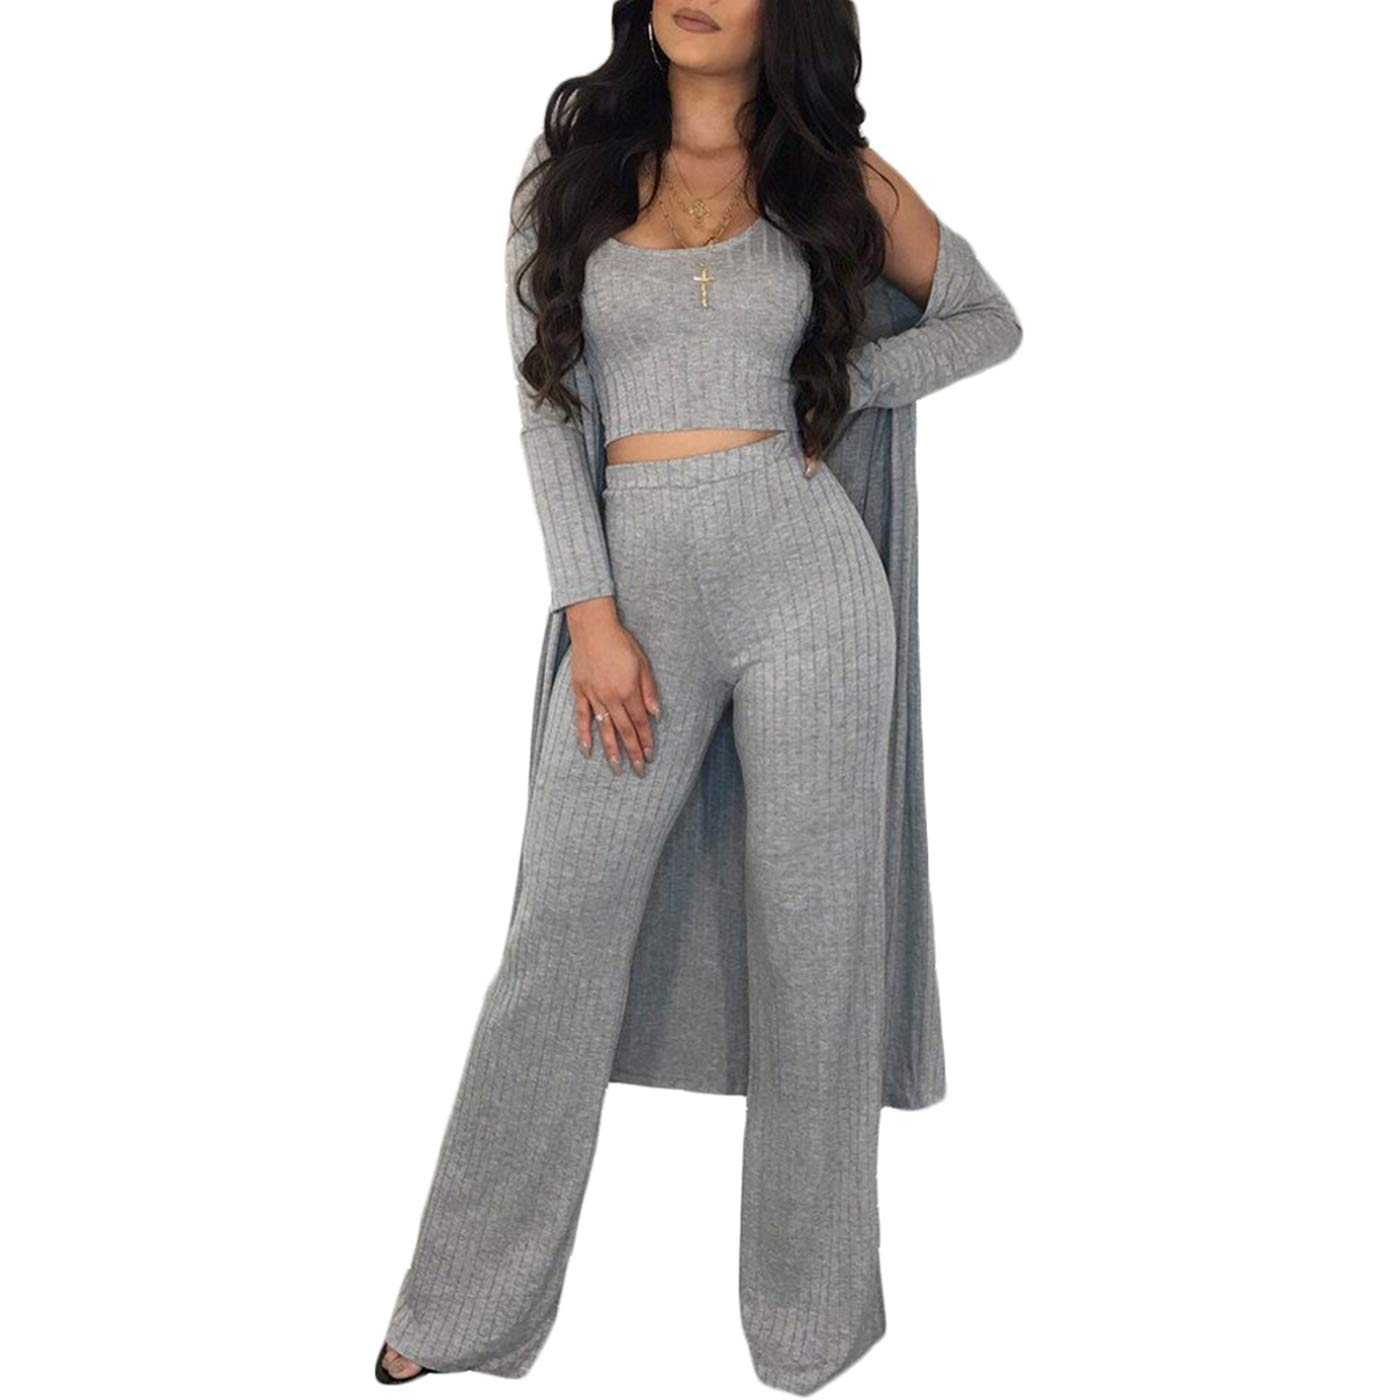 Tiaoqi Women 3 Pieces Sexy Tank Crop Top Long Kimono Cardigan Cover up Bodycon High Waist Wide Leg Long Pants Suit Set (Grey, M)